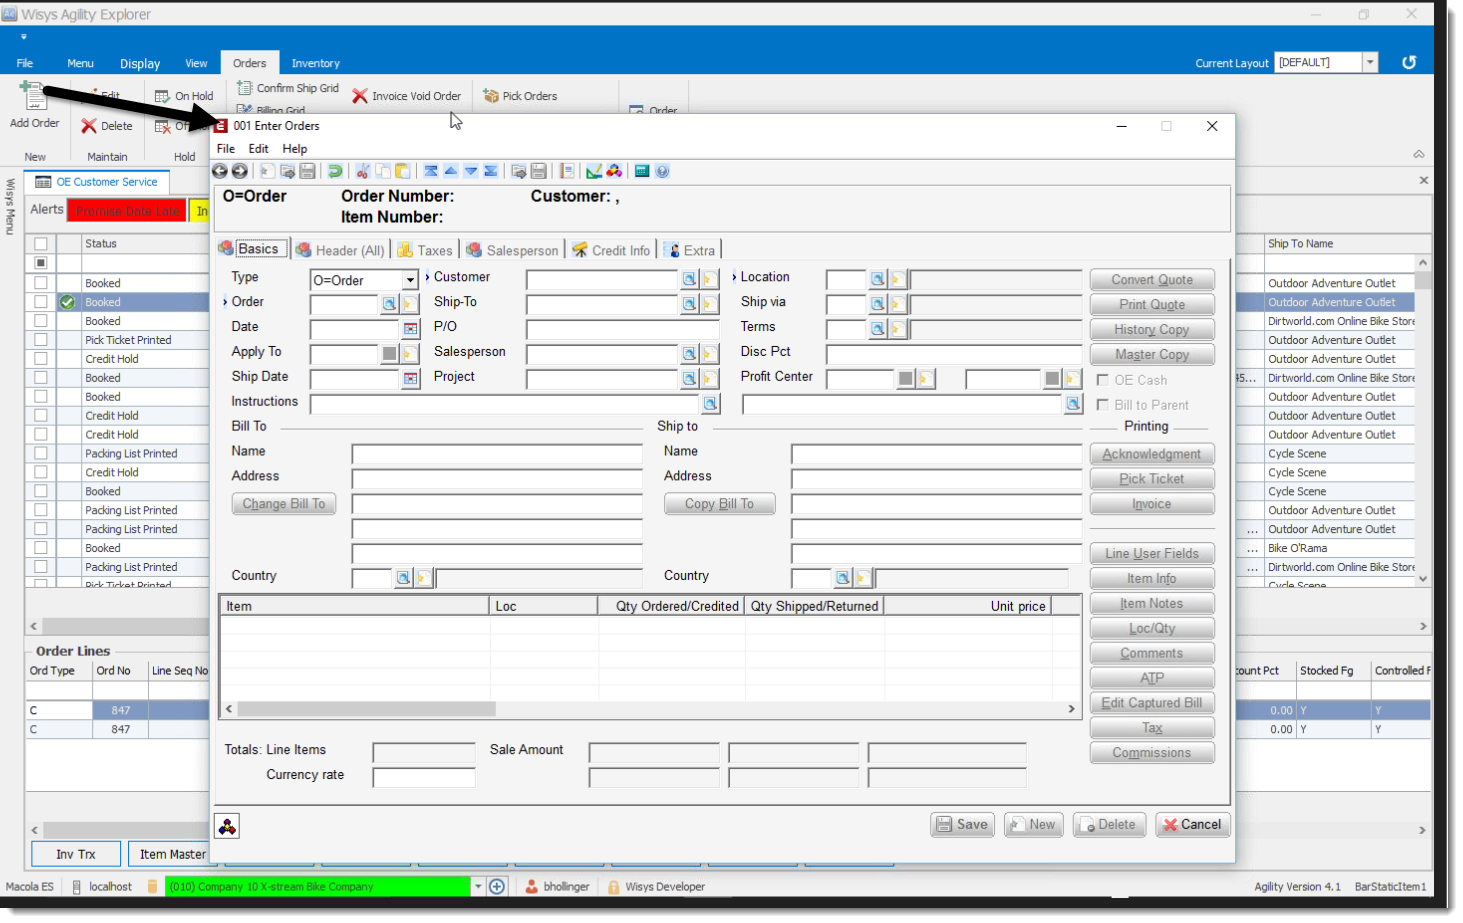 Using Grids to View and Process Transactions in Macola